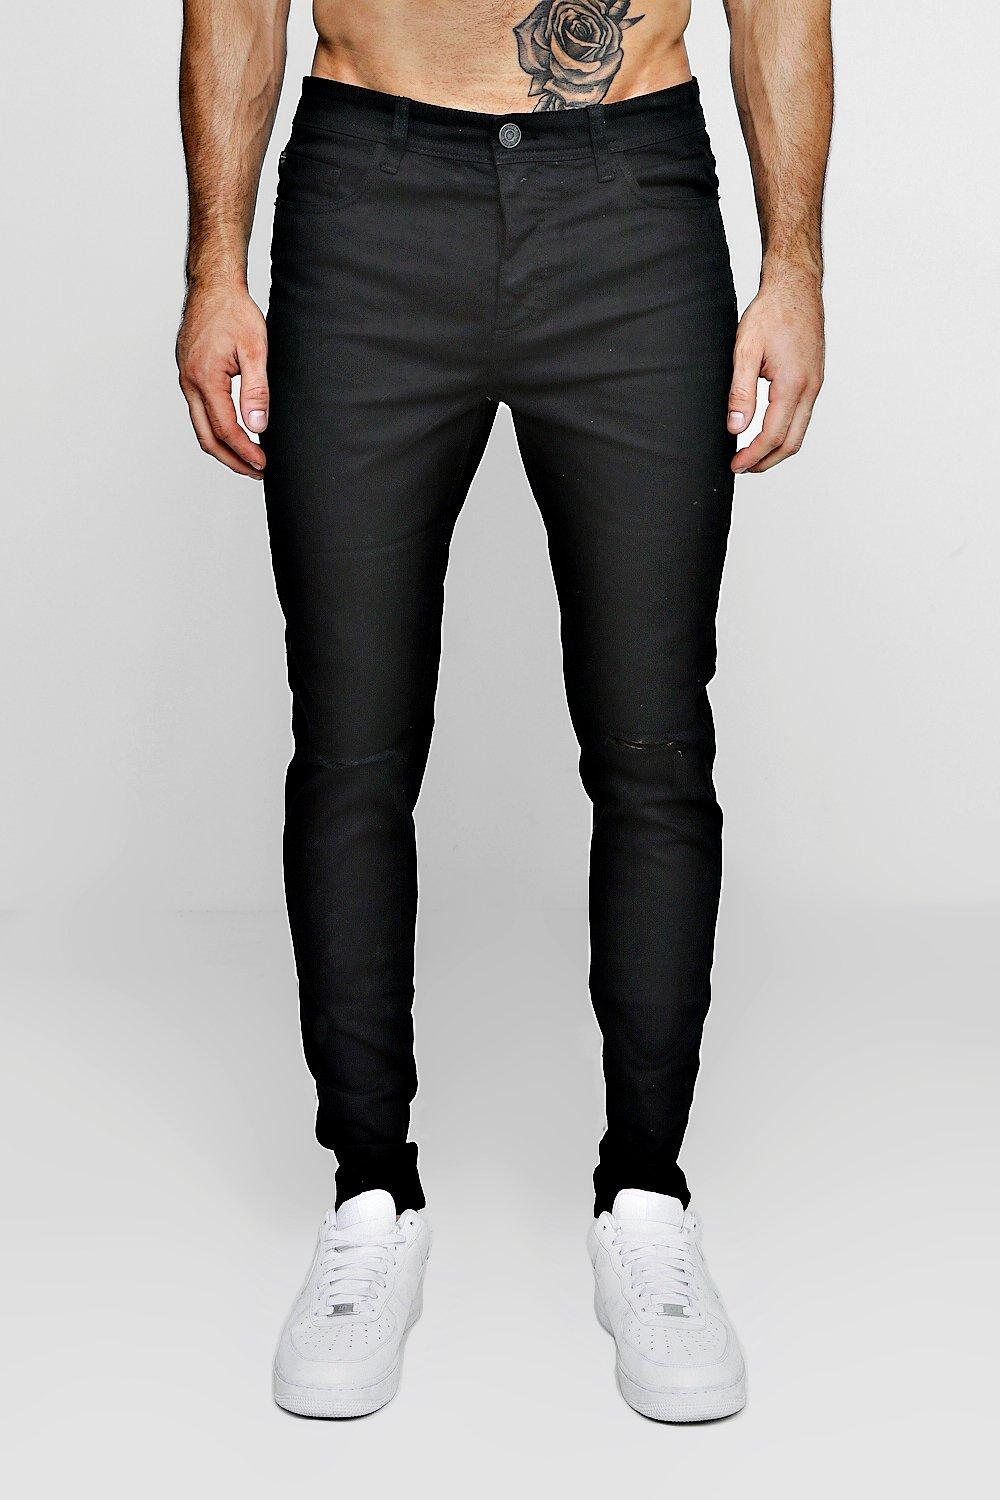 e00f314710a Mens Black Stretch Skinny Jeans With Ripped Knees. Hover to zoom